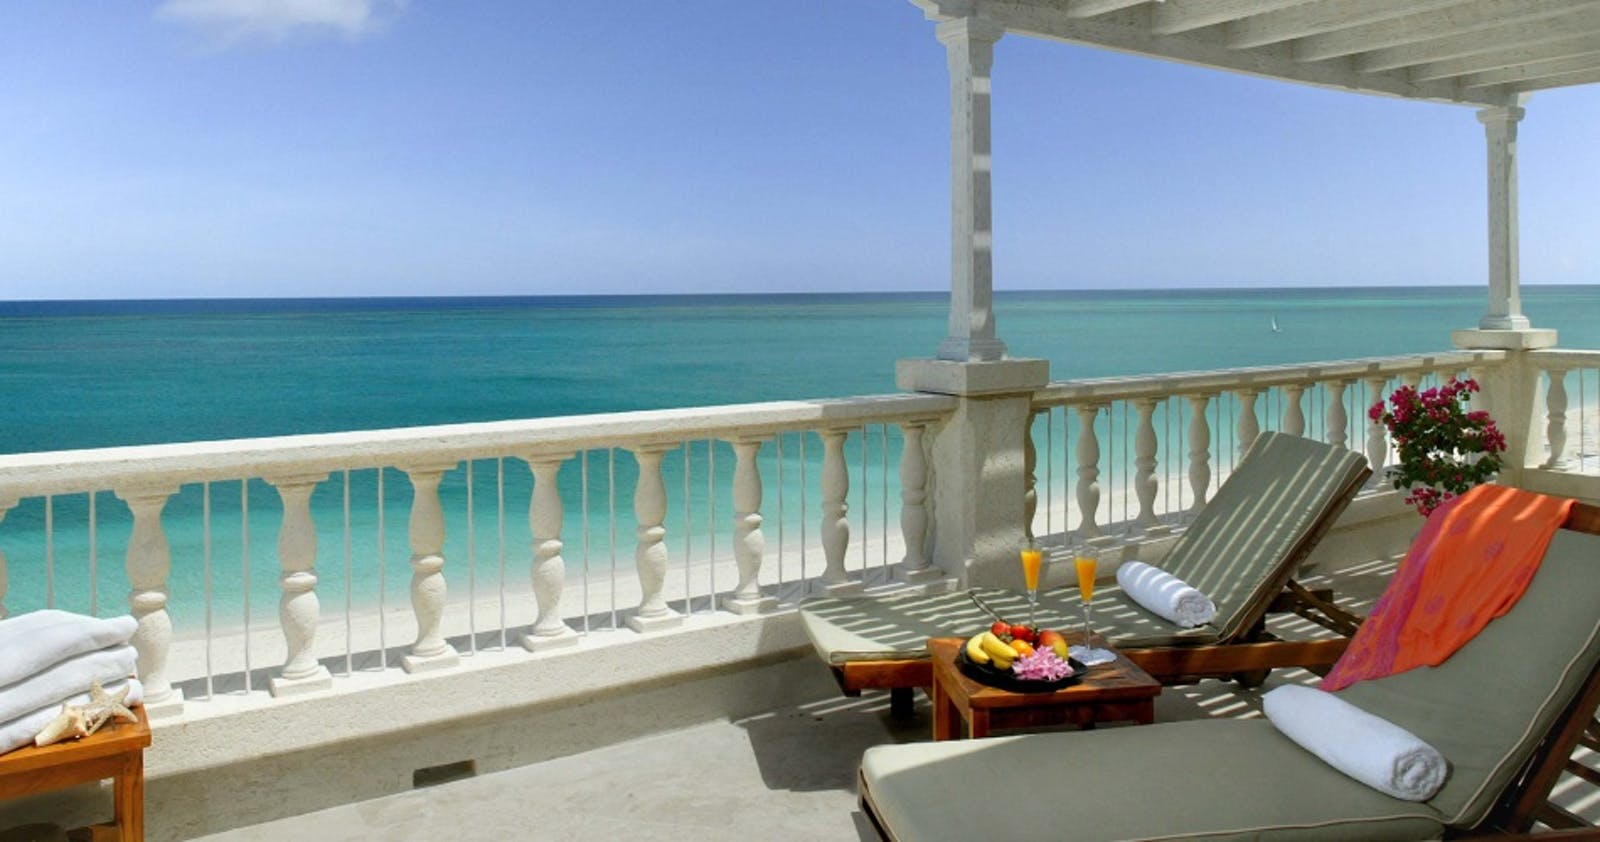 Lounging at The Regent Palms Turks & Caicos